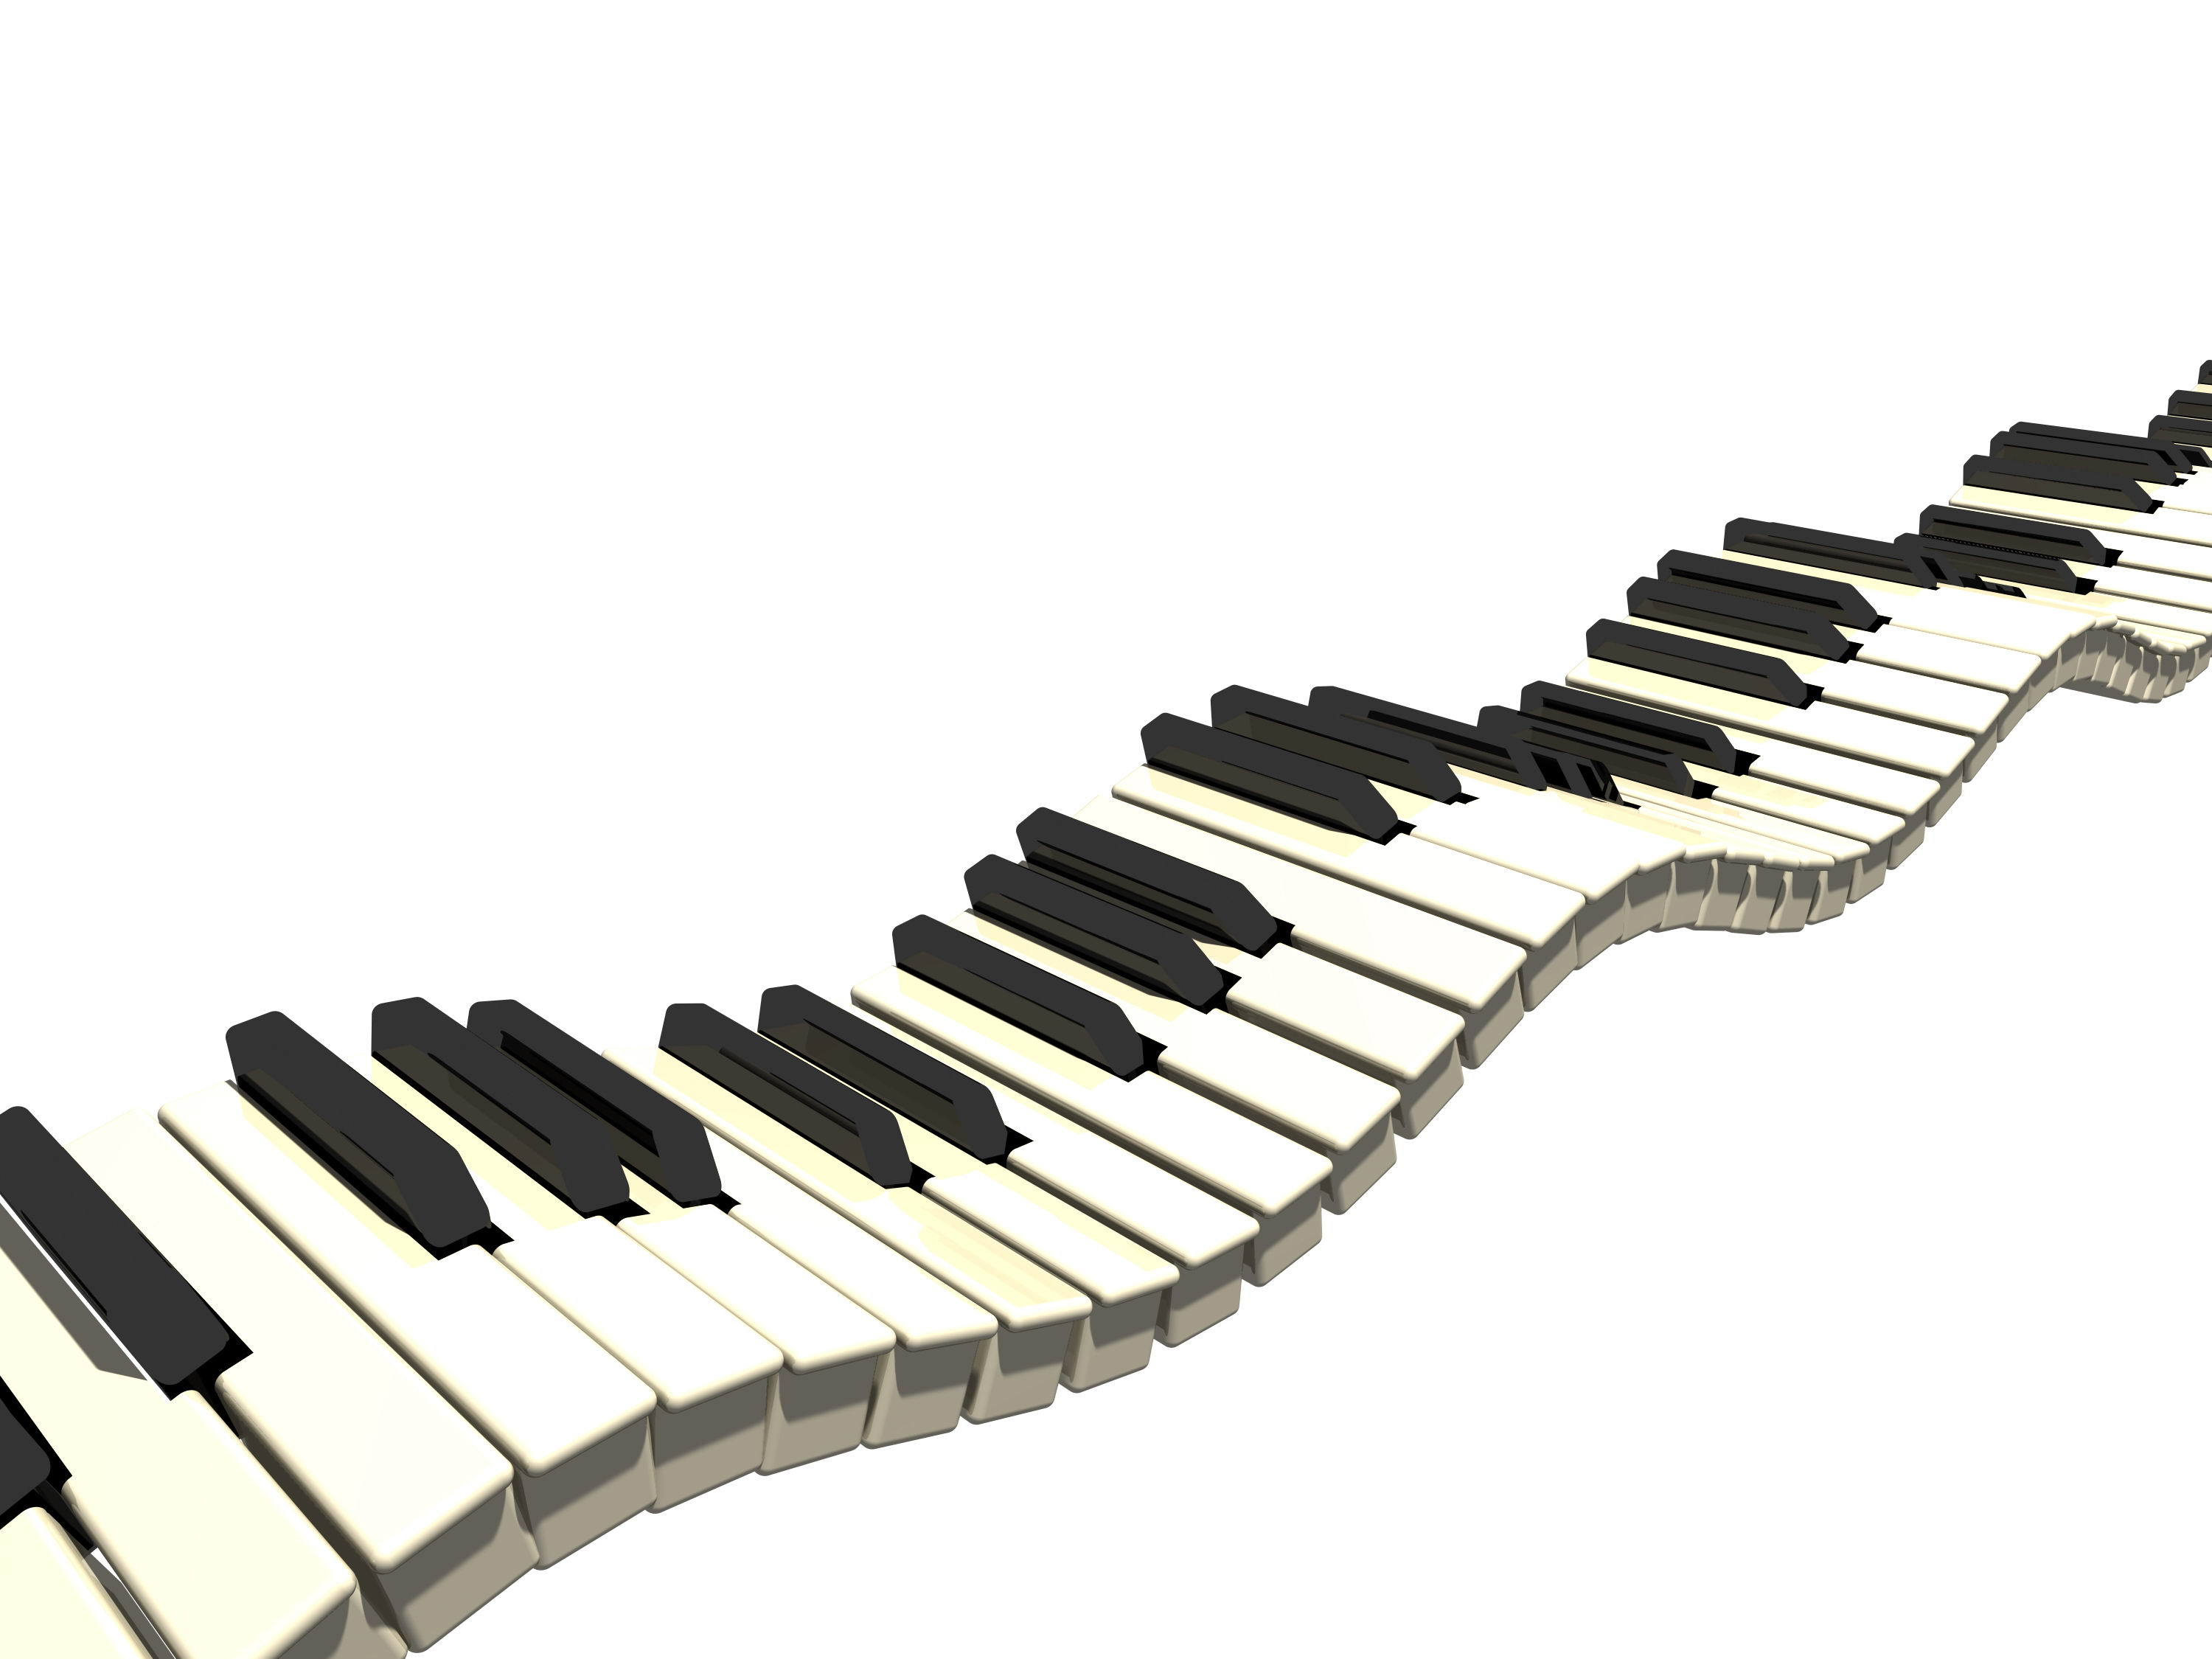 3000x2250 Keyboard And Piano Clipart 2 Image 9